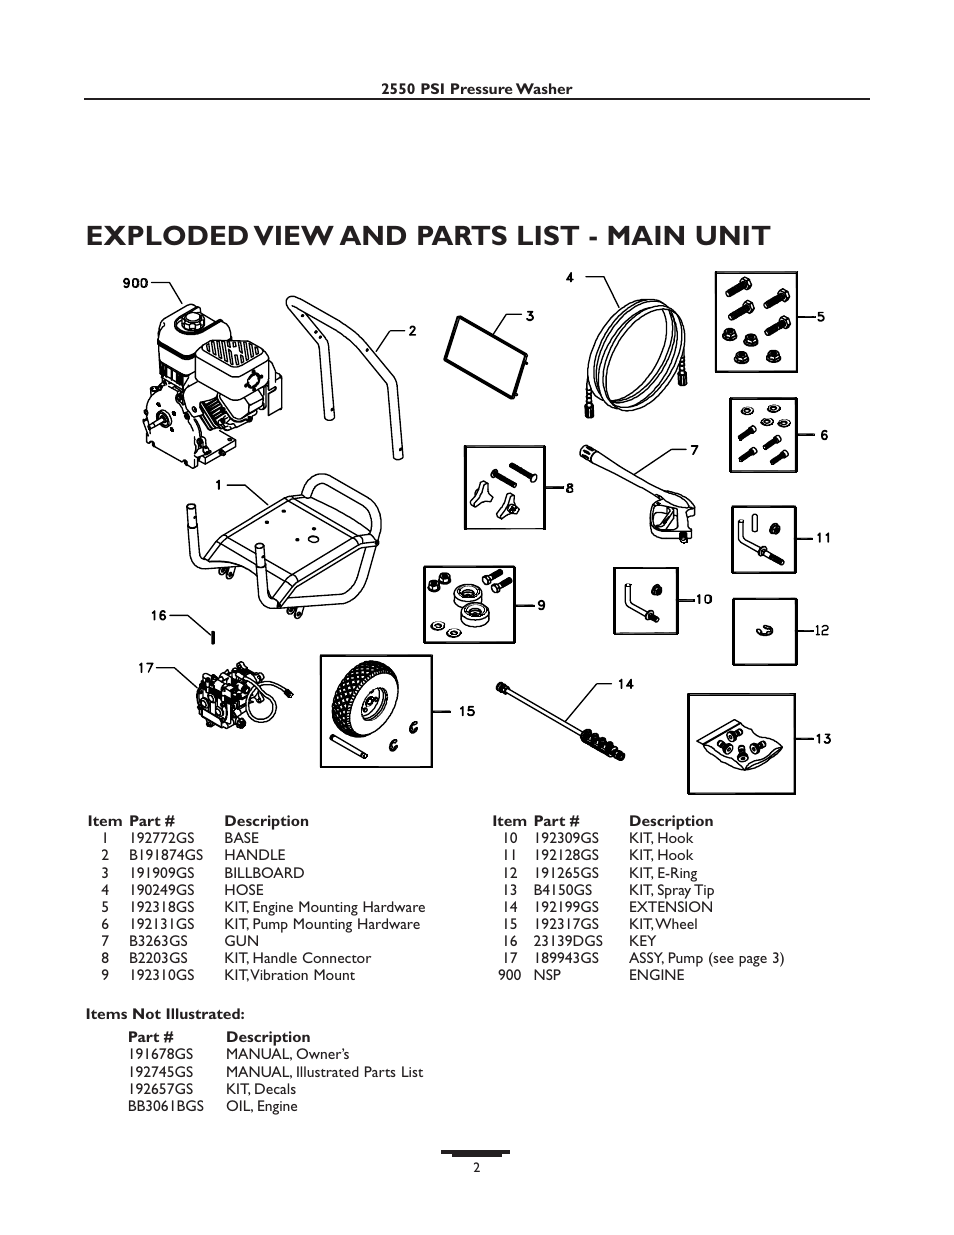 Exploded view and parts list - main unit | Briggs & Stratton 01936 User  Manual | Page 34 / 35